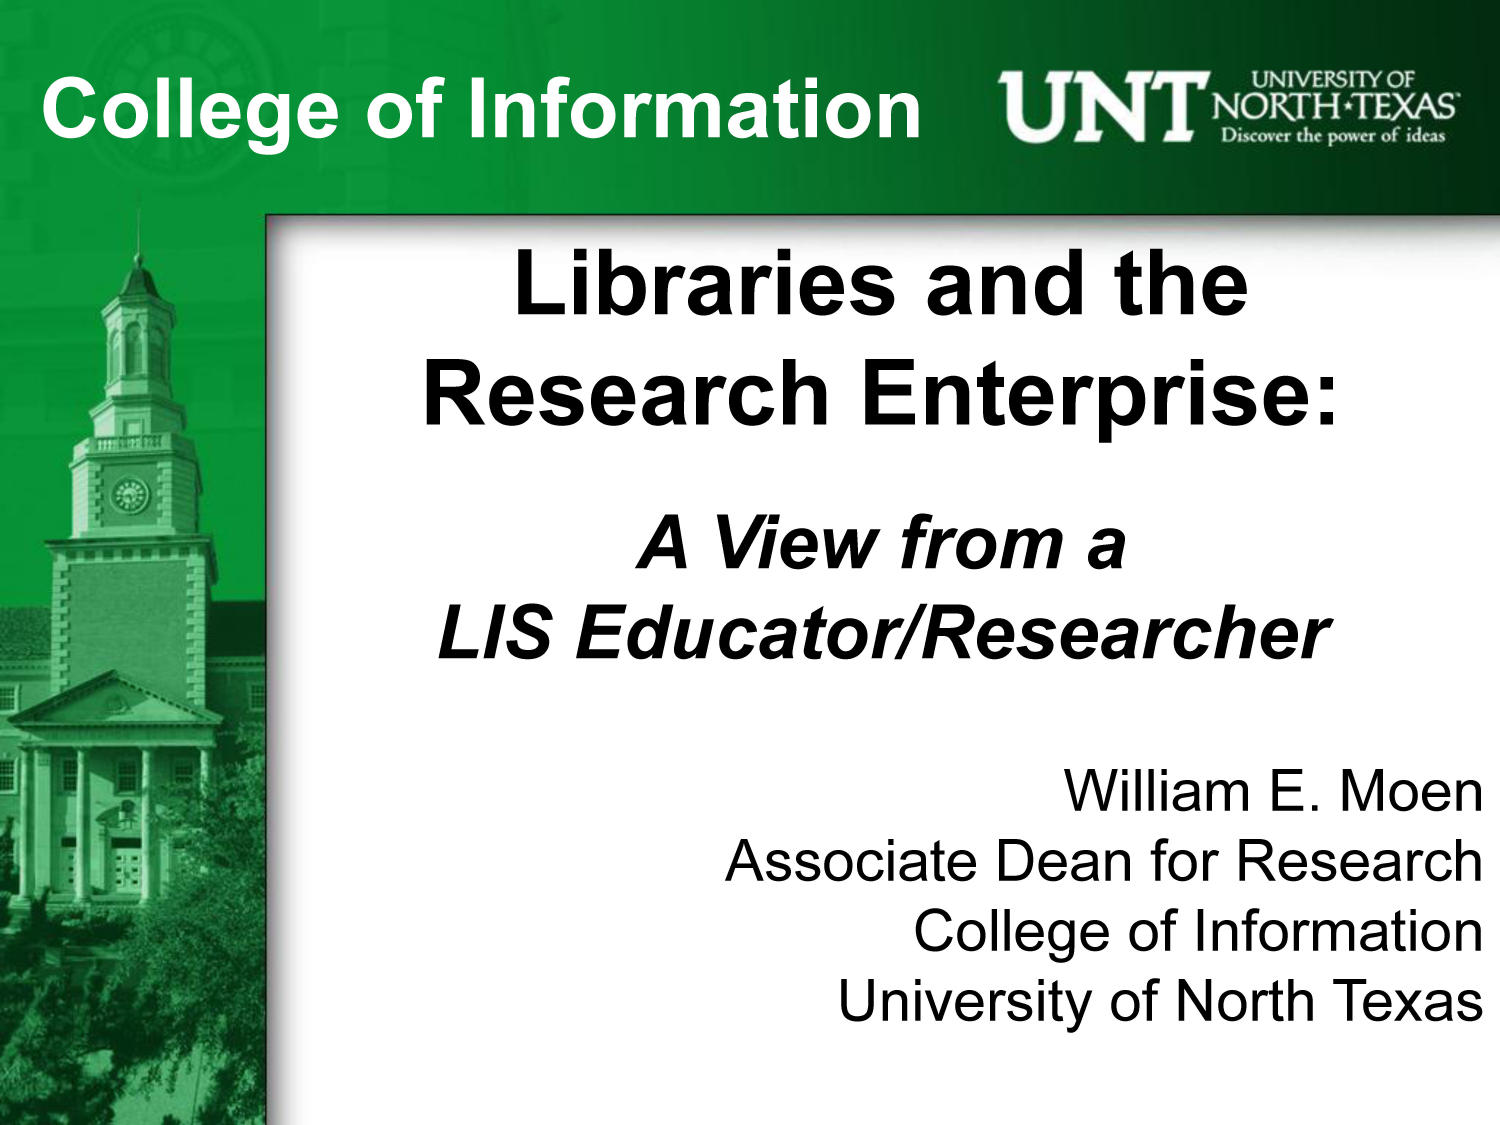 Libraries and the Research Enterprise: A View from a LIS Educator/Researcher                                                                                                      [Sequence #]: 1 of 11